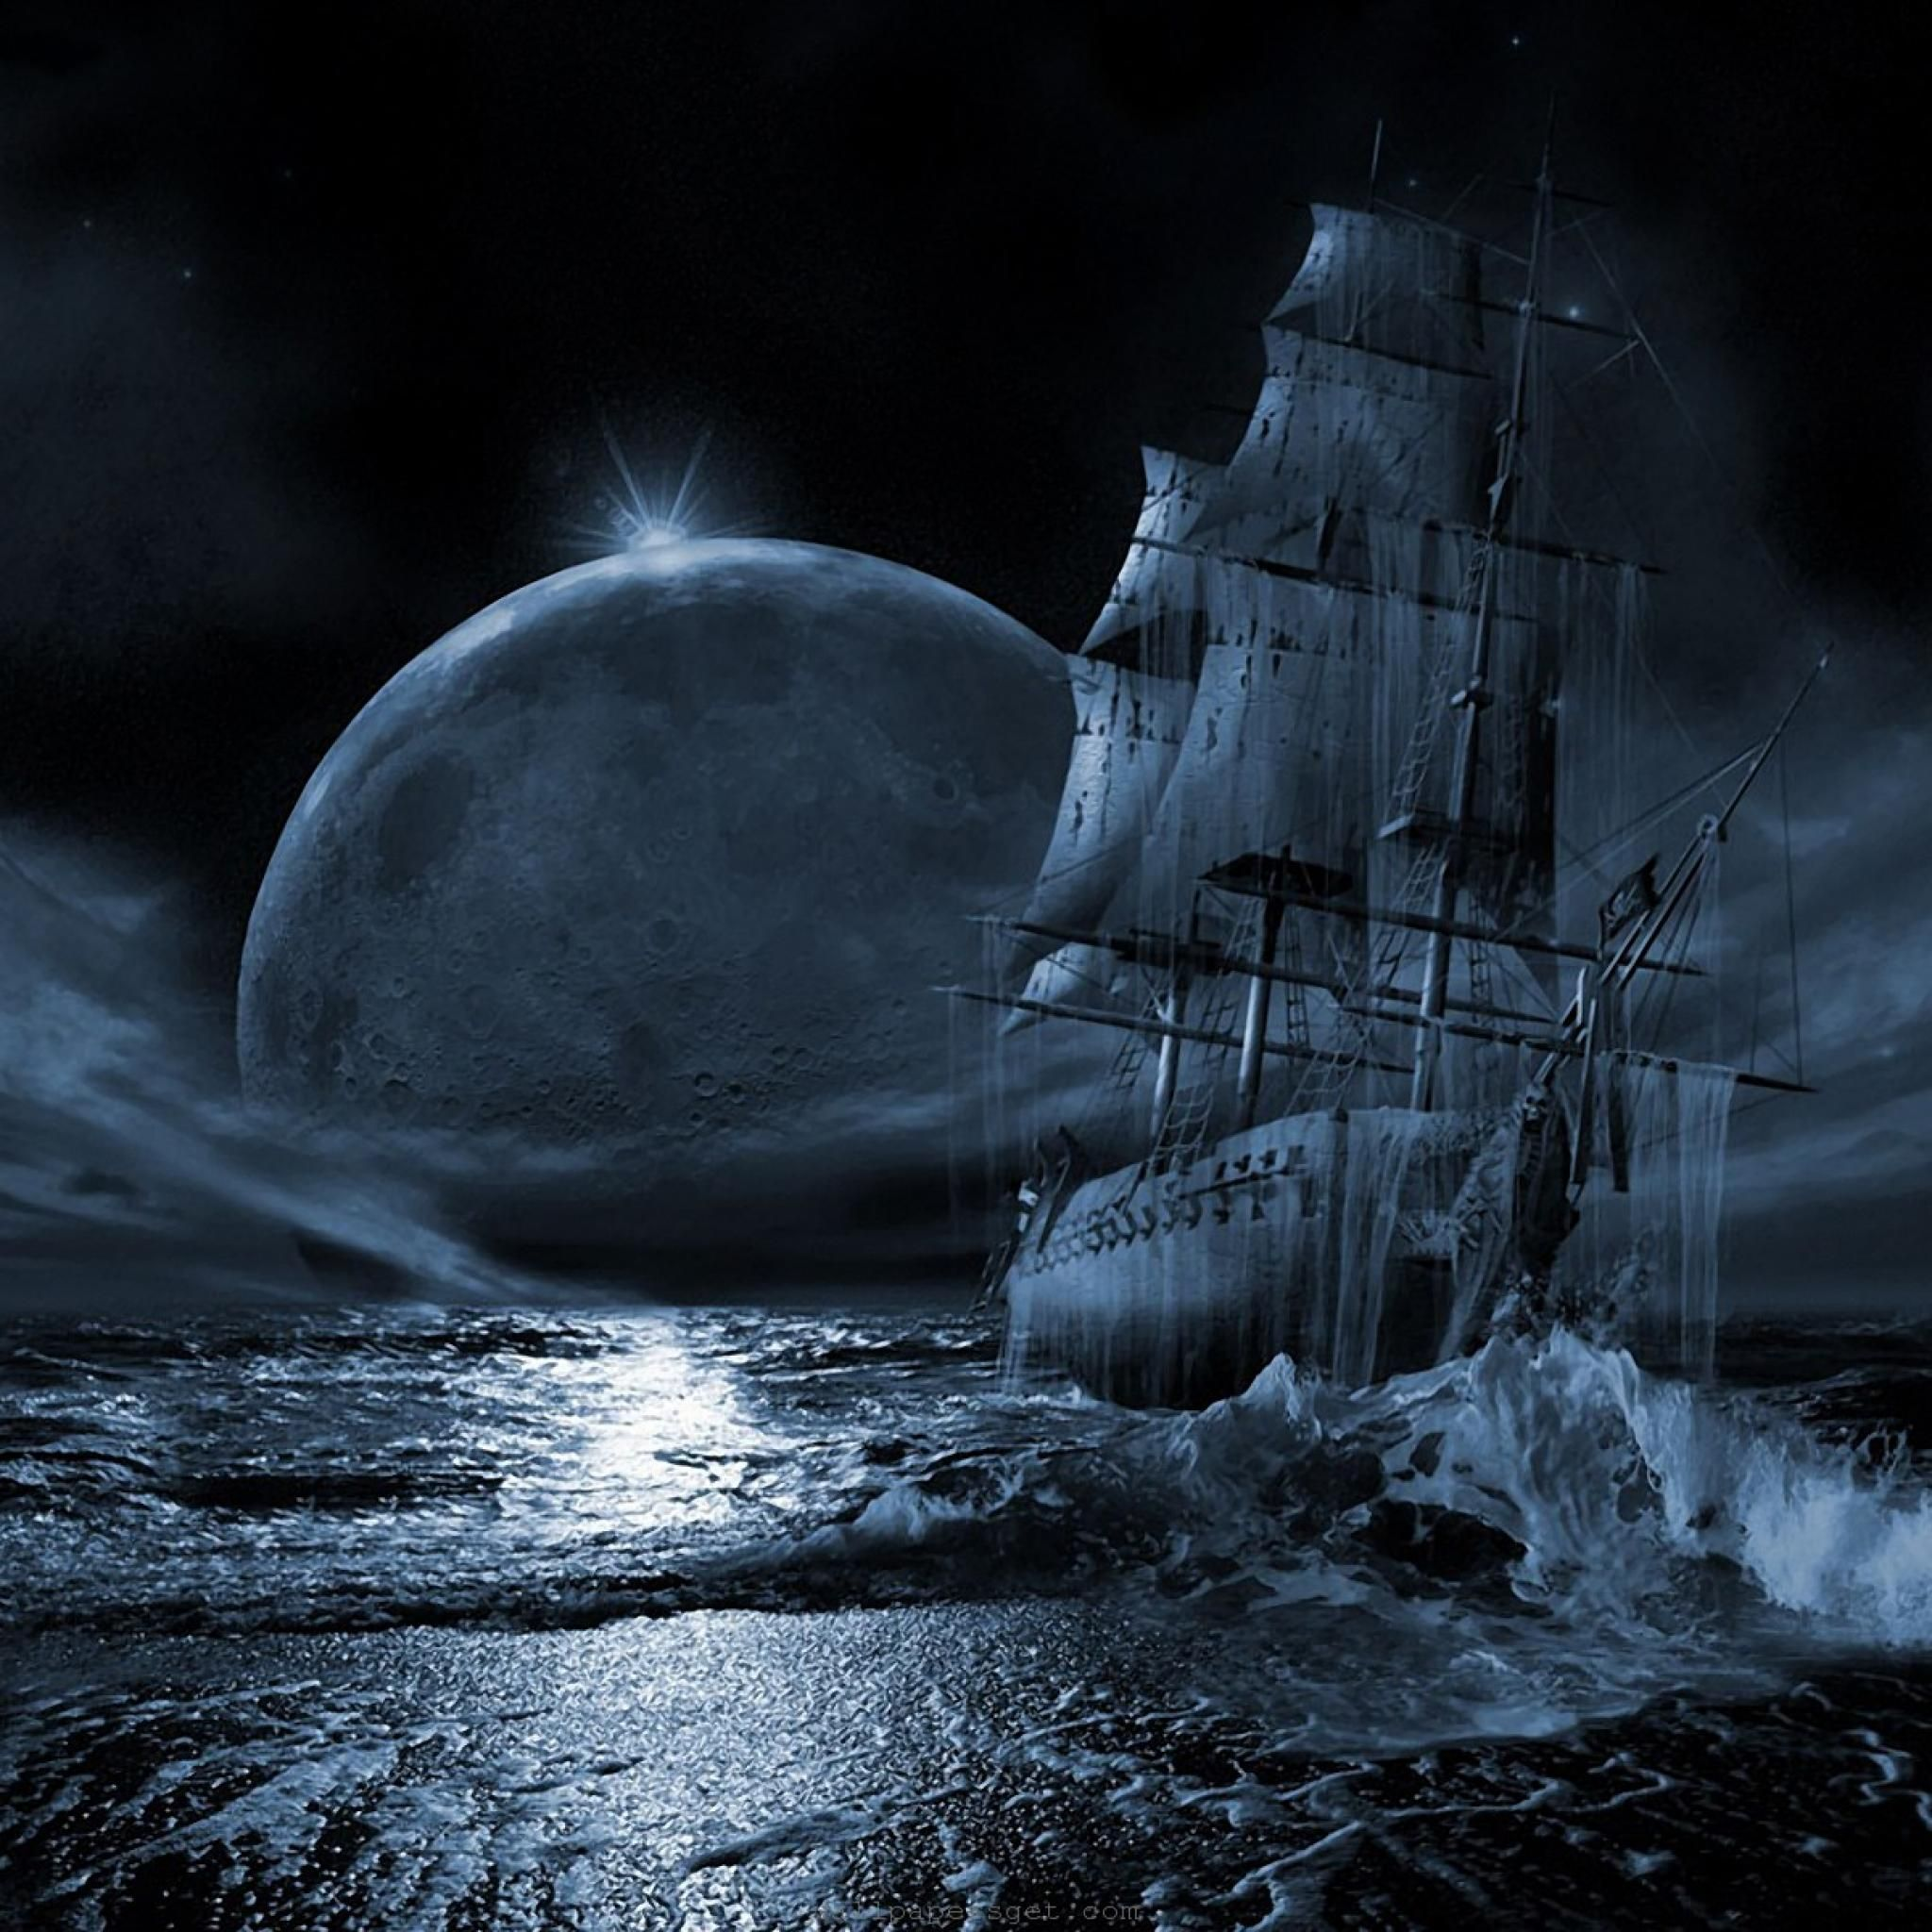 Frozen Ship near shore with a full moon on background